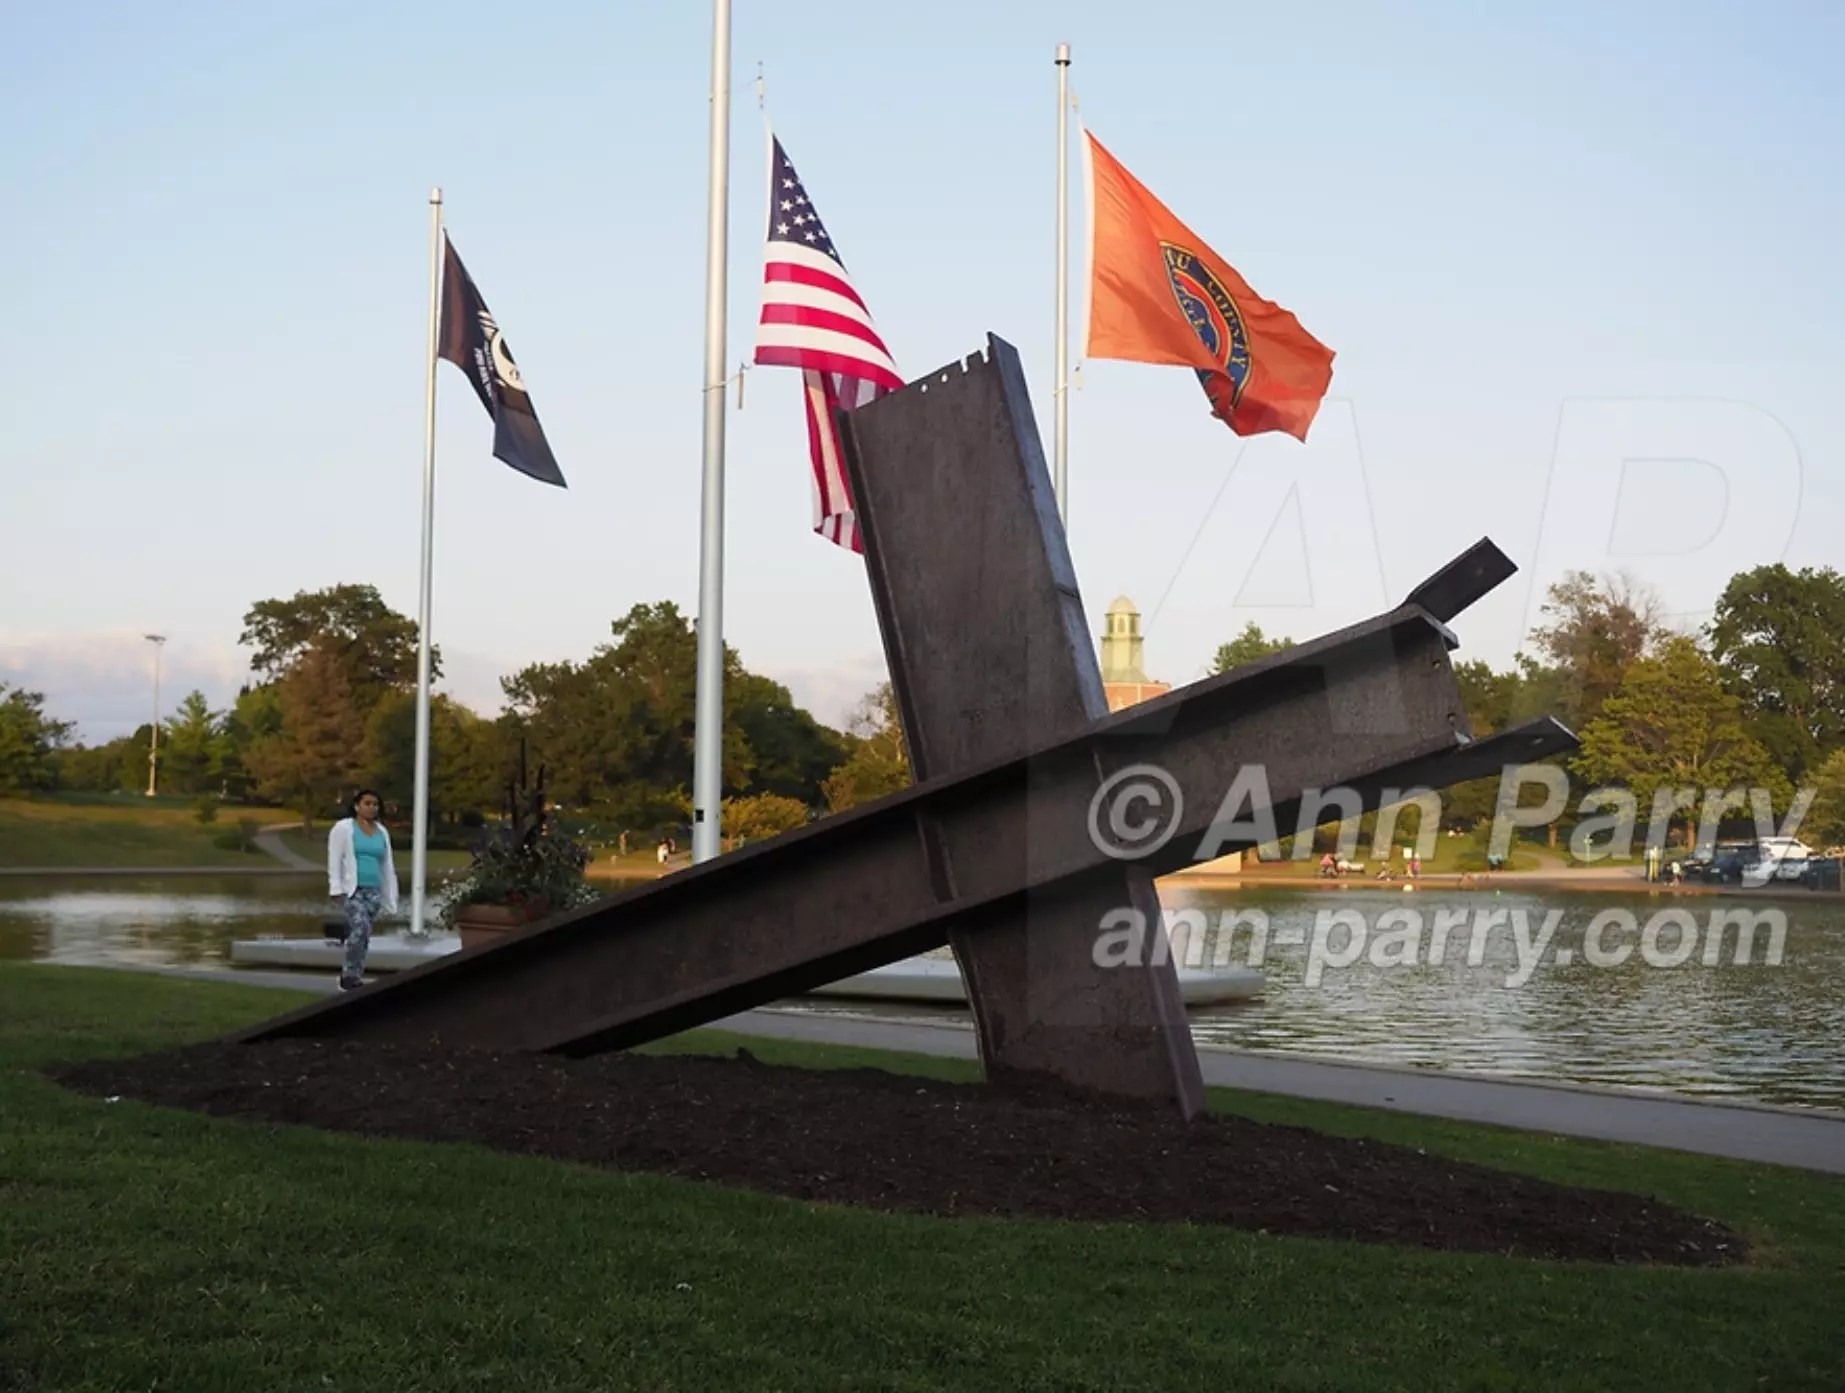 East Meadow, NY, USA. Sept. 10, 2017. Eisenhower Park pond area, with Nassau County Eisenhower Park September 11, 2001 Memorial on west side of pond and War Memorials on east side of pond.